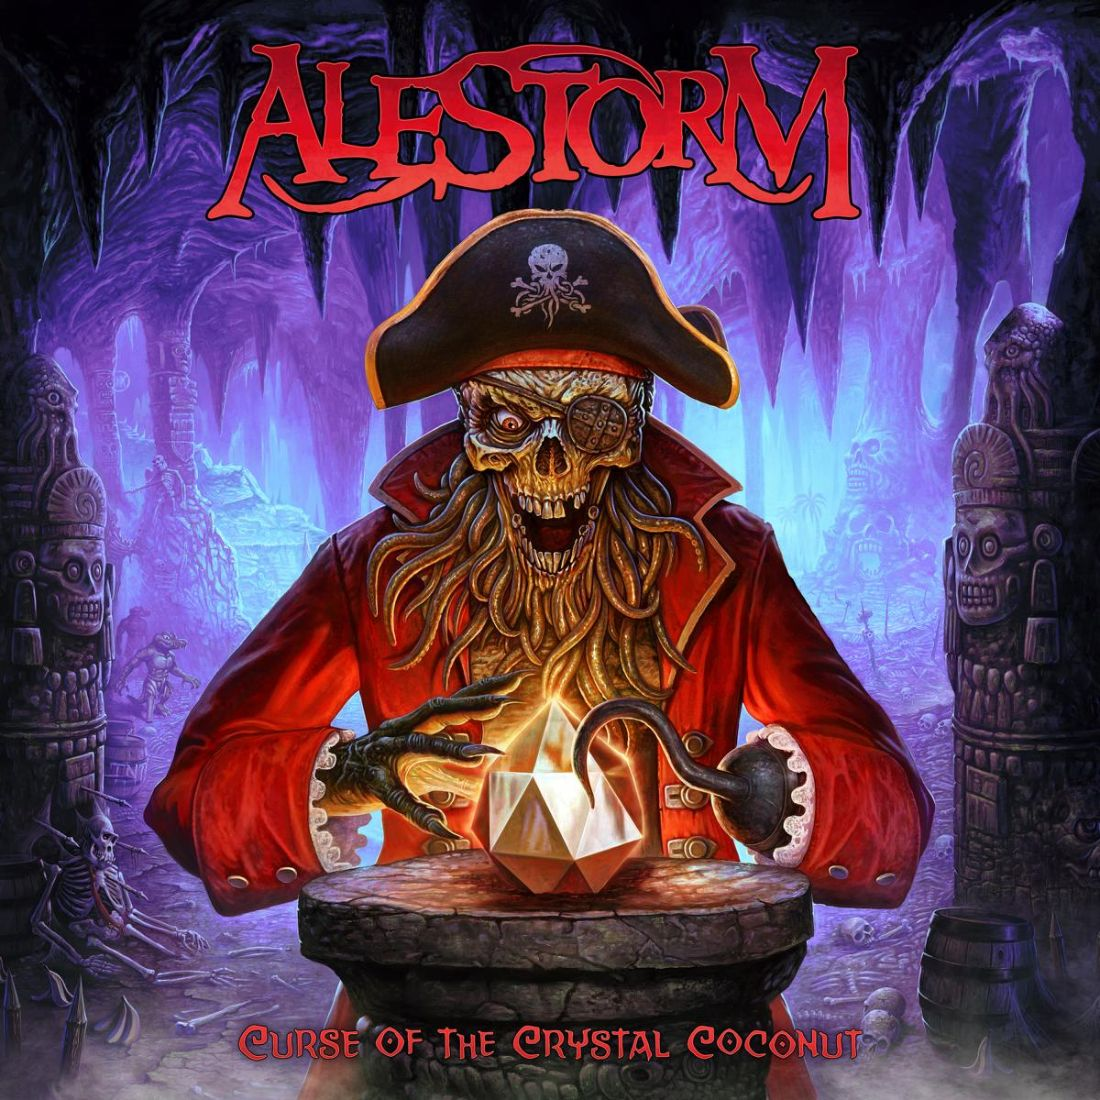 alestorm-neues-album-curse-of-the-crystal-coconut-kommt-am-29-05-20